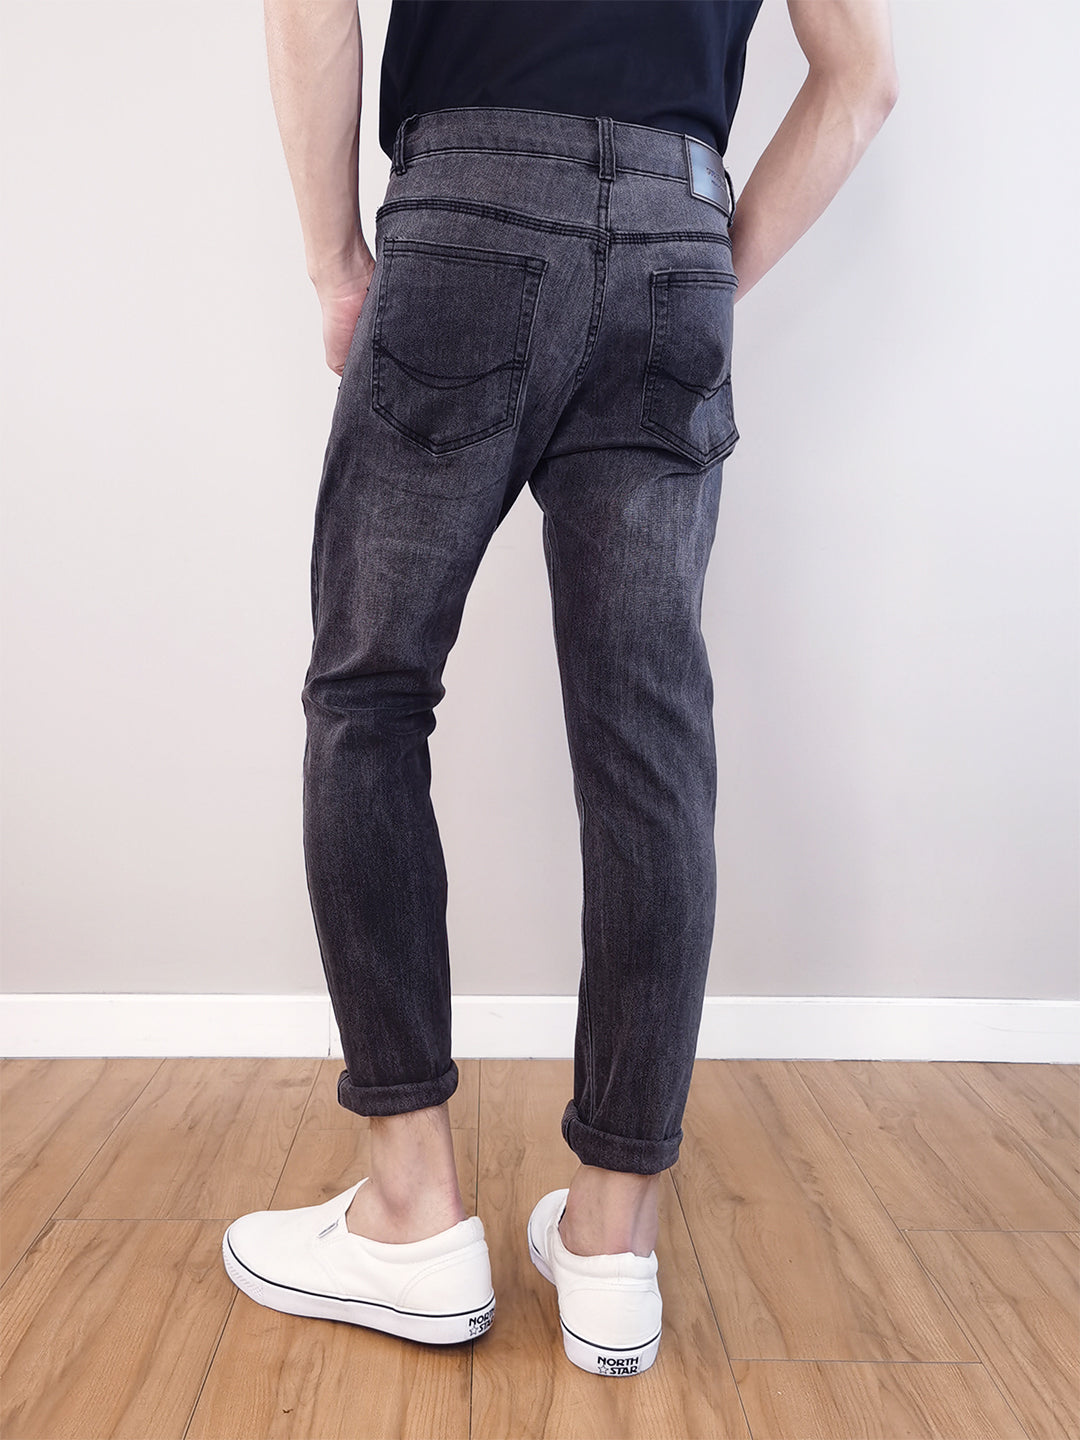 Long Jeans Skinny Fit - Grey